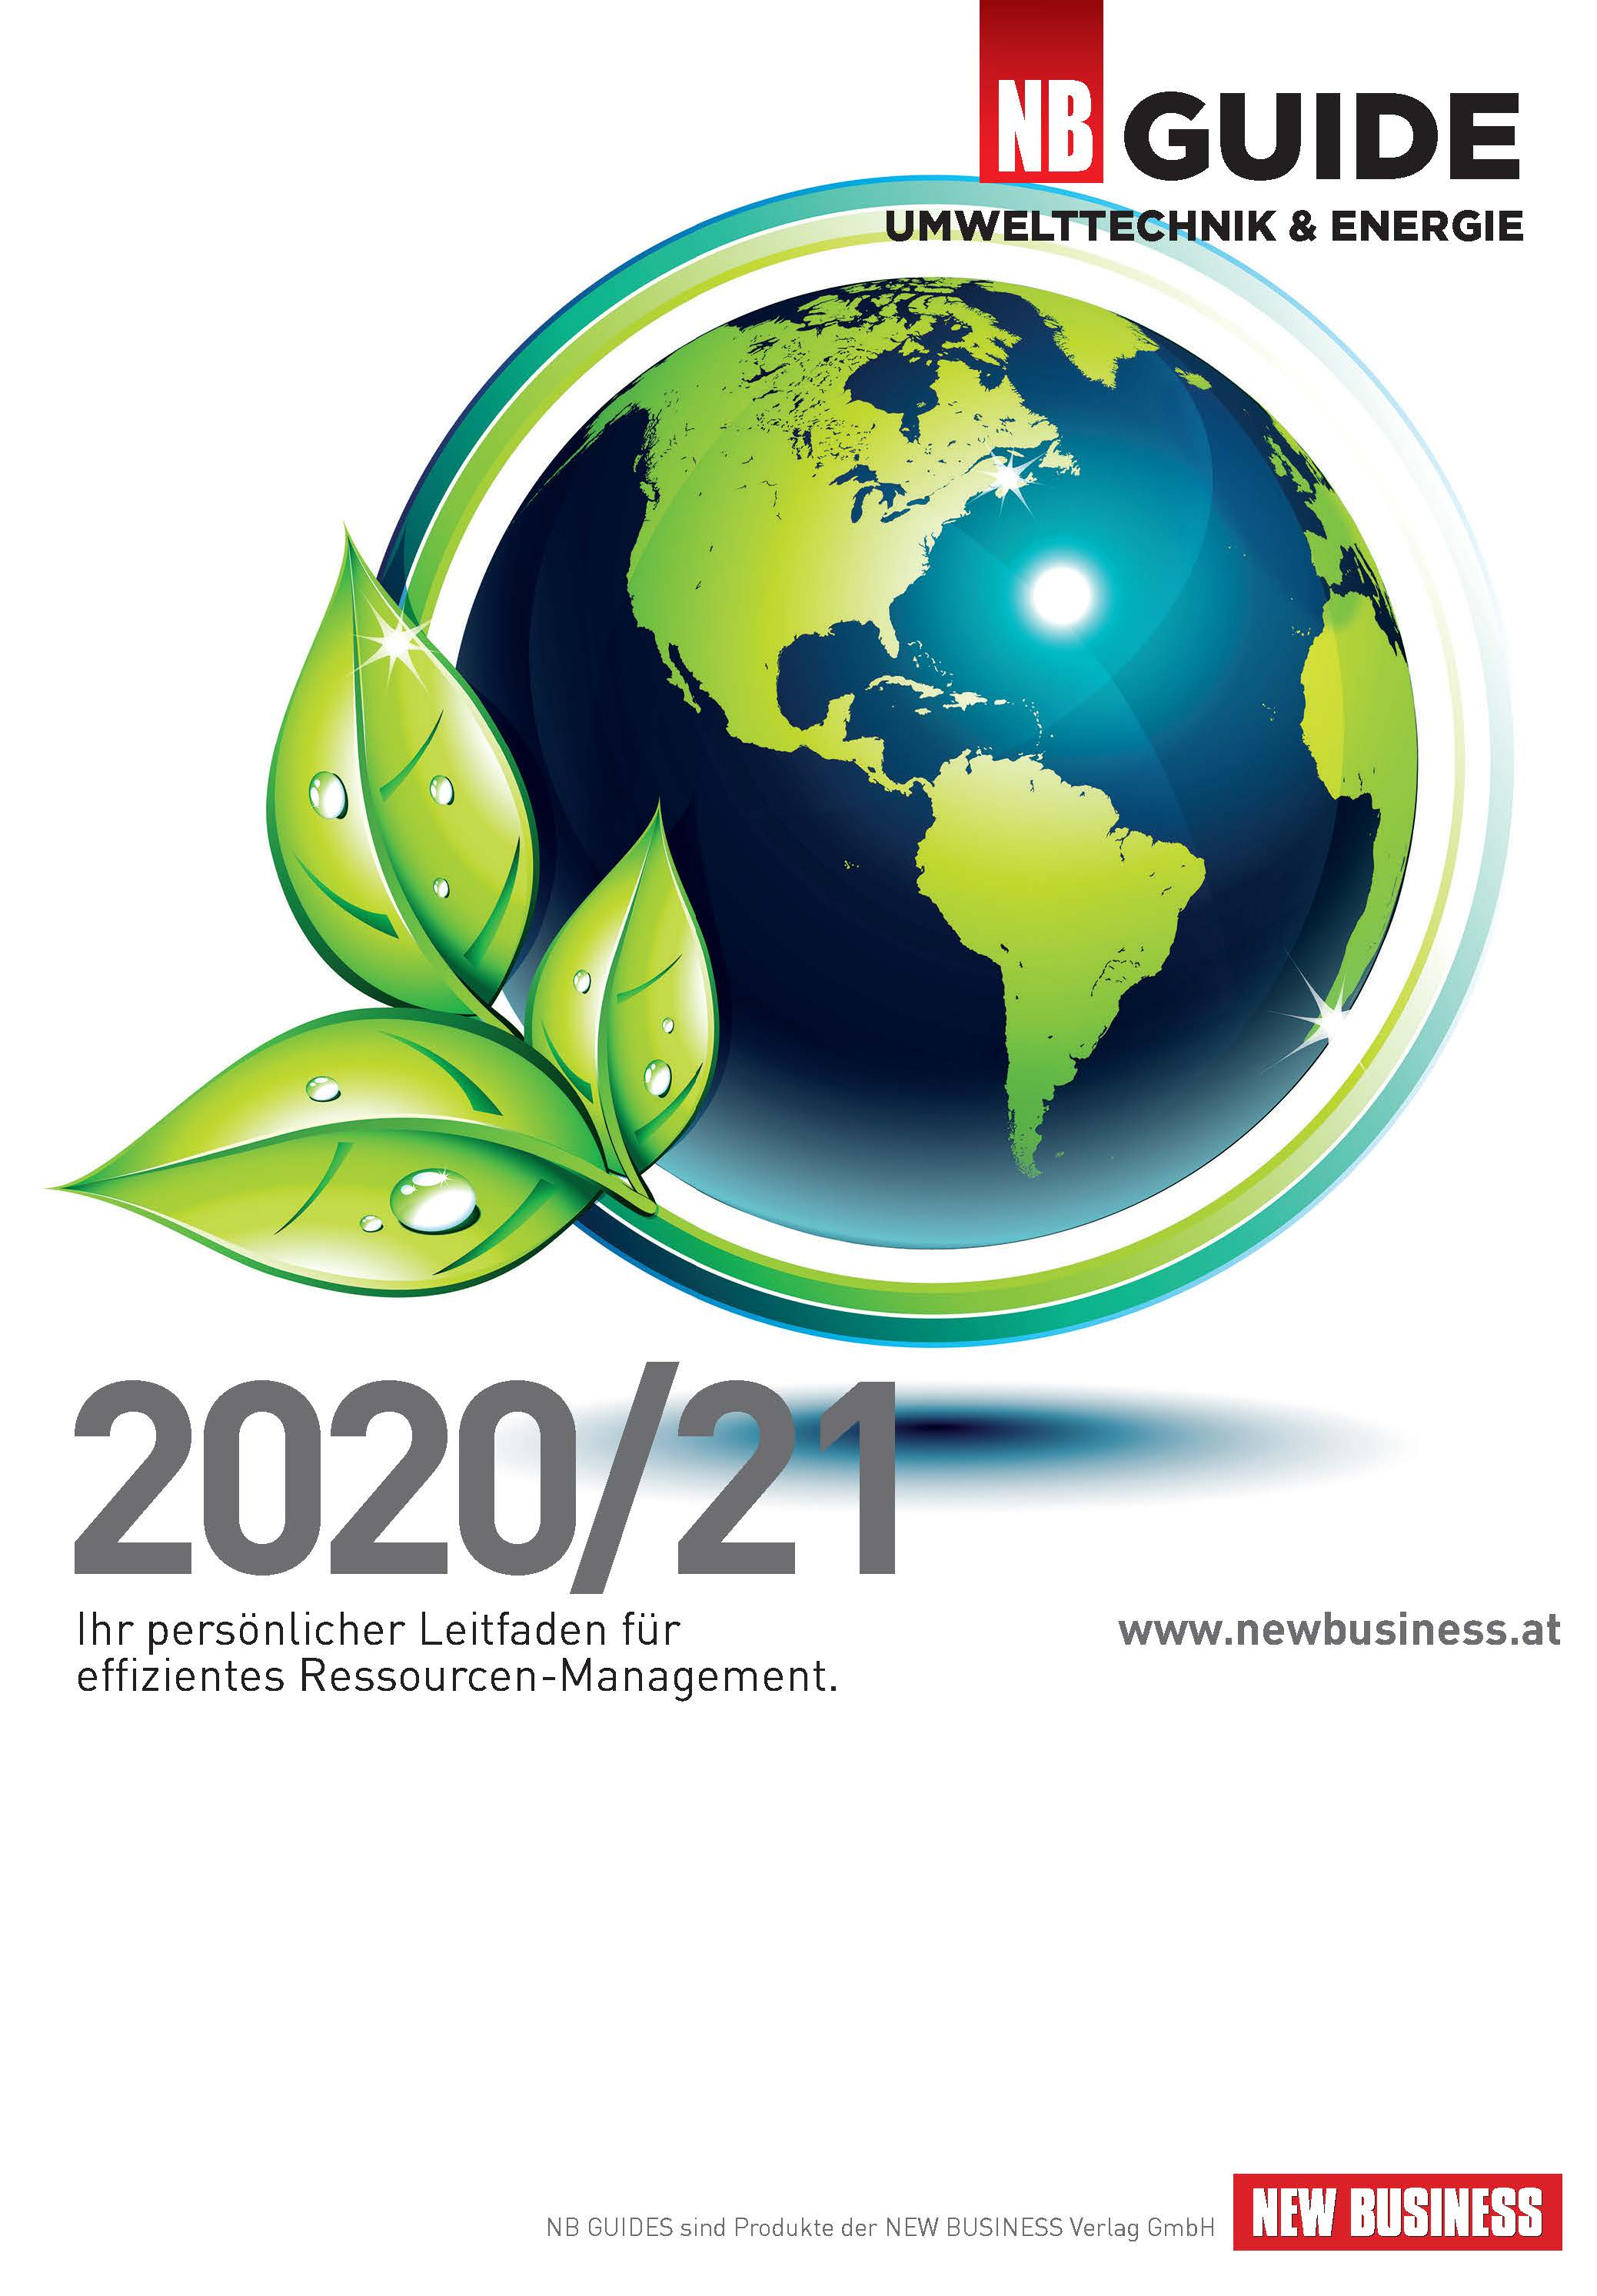 Cover: NEW BUSINESS Guides - UMWELTTECHNIK- & ENERGIE-GUIDE 2020/21